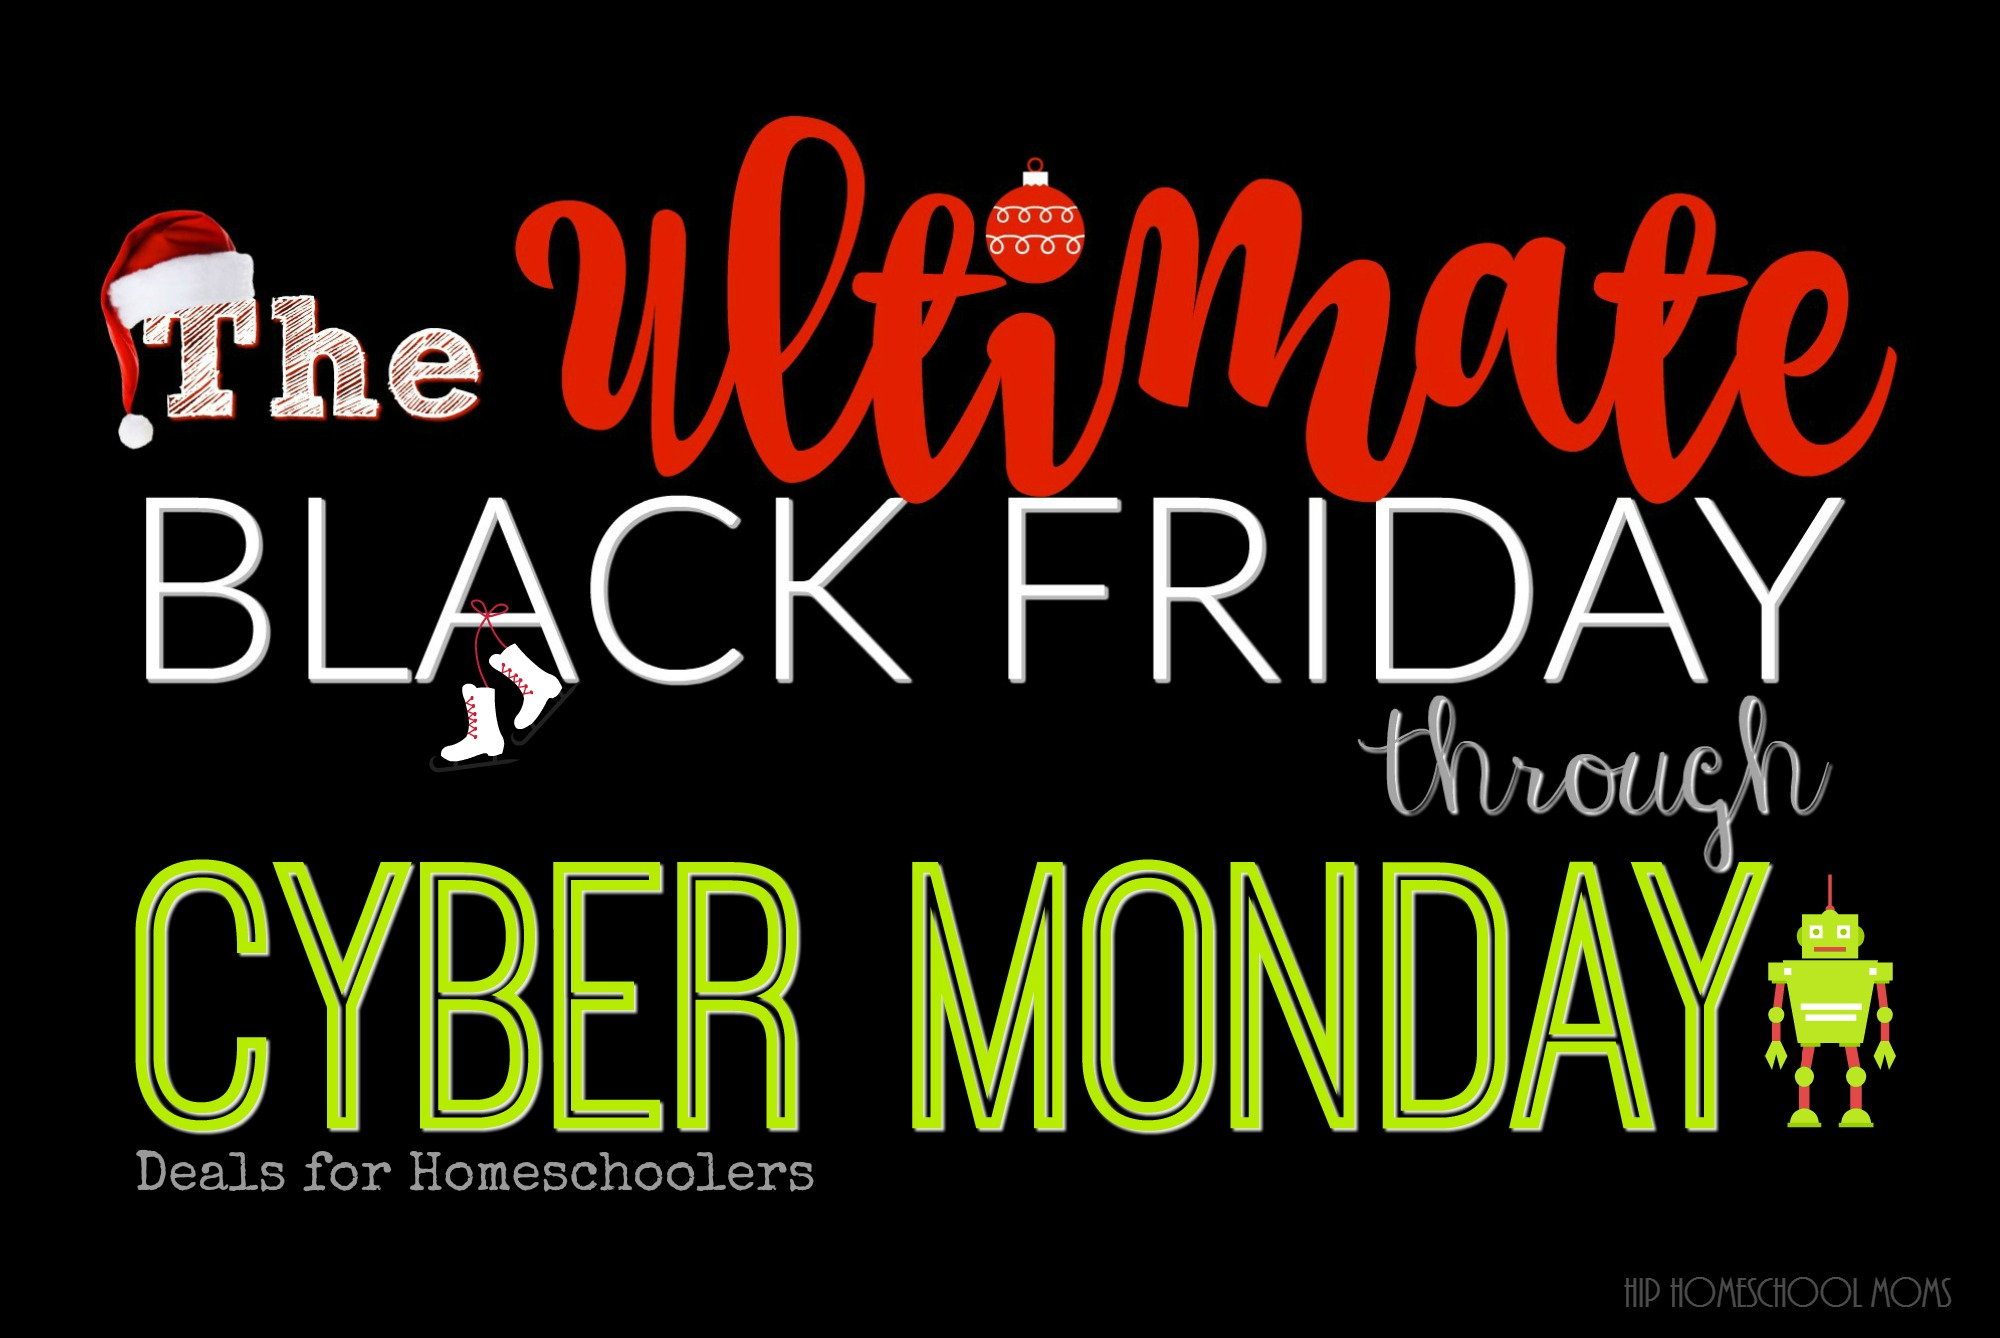 cyber day_The ULTIMATE Black Friday through Cyber Monday Deals Guide for Homeschoolers - Hip ...